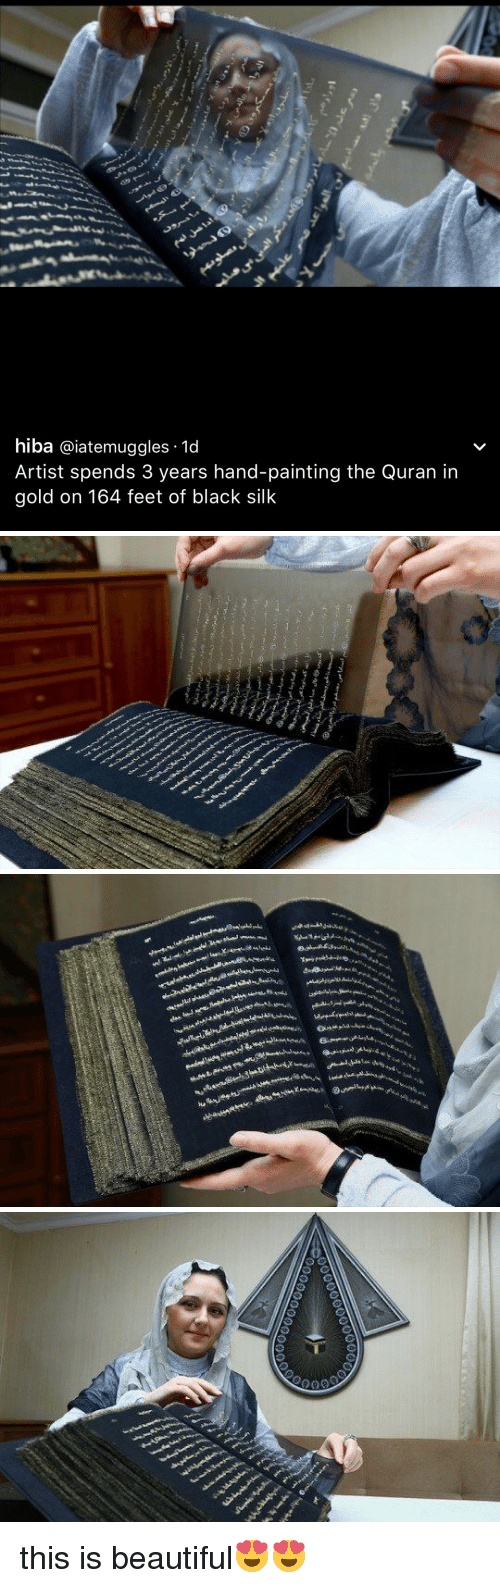 Beautiful, Black, and Quran: hiba les 1d  Artist spends 3 years hand-painting the Quran in  gold on 164 feet of black silk   甿 J﹂sewa 6ort.uALi   0000000000000  00000000000 this is beautiful😍😍